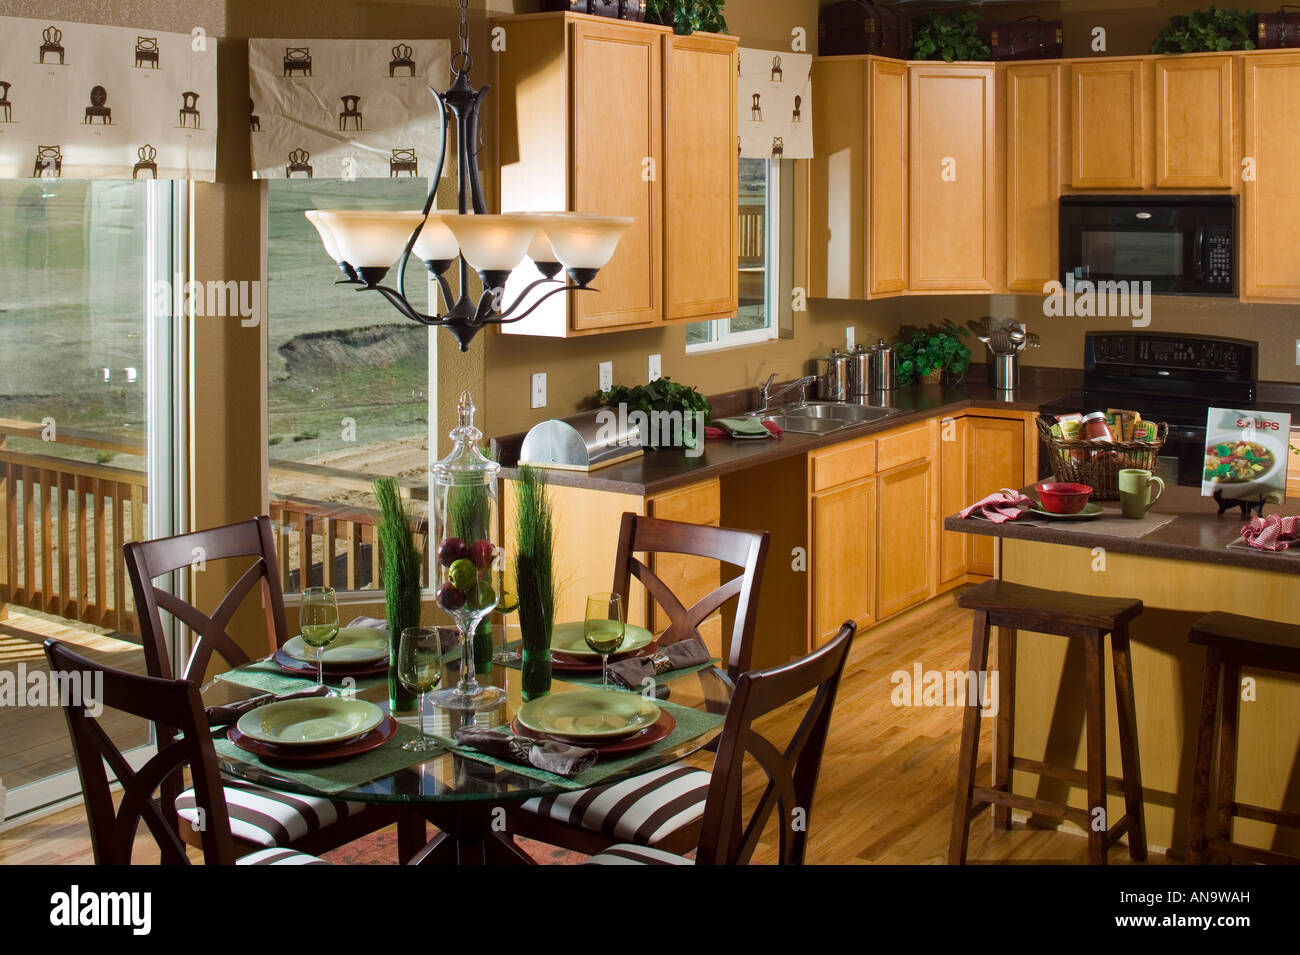 Denver Colorado Real Estate Single Family Home Middle Class Interior Kitchen Dining Room Table And Chairs